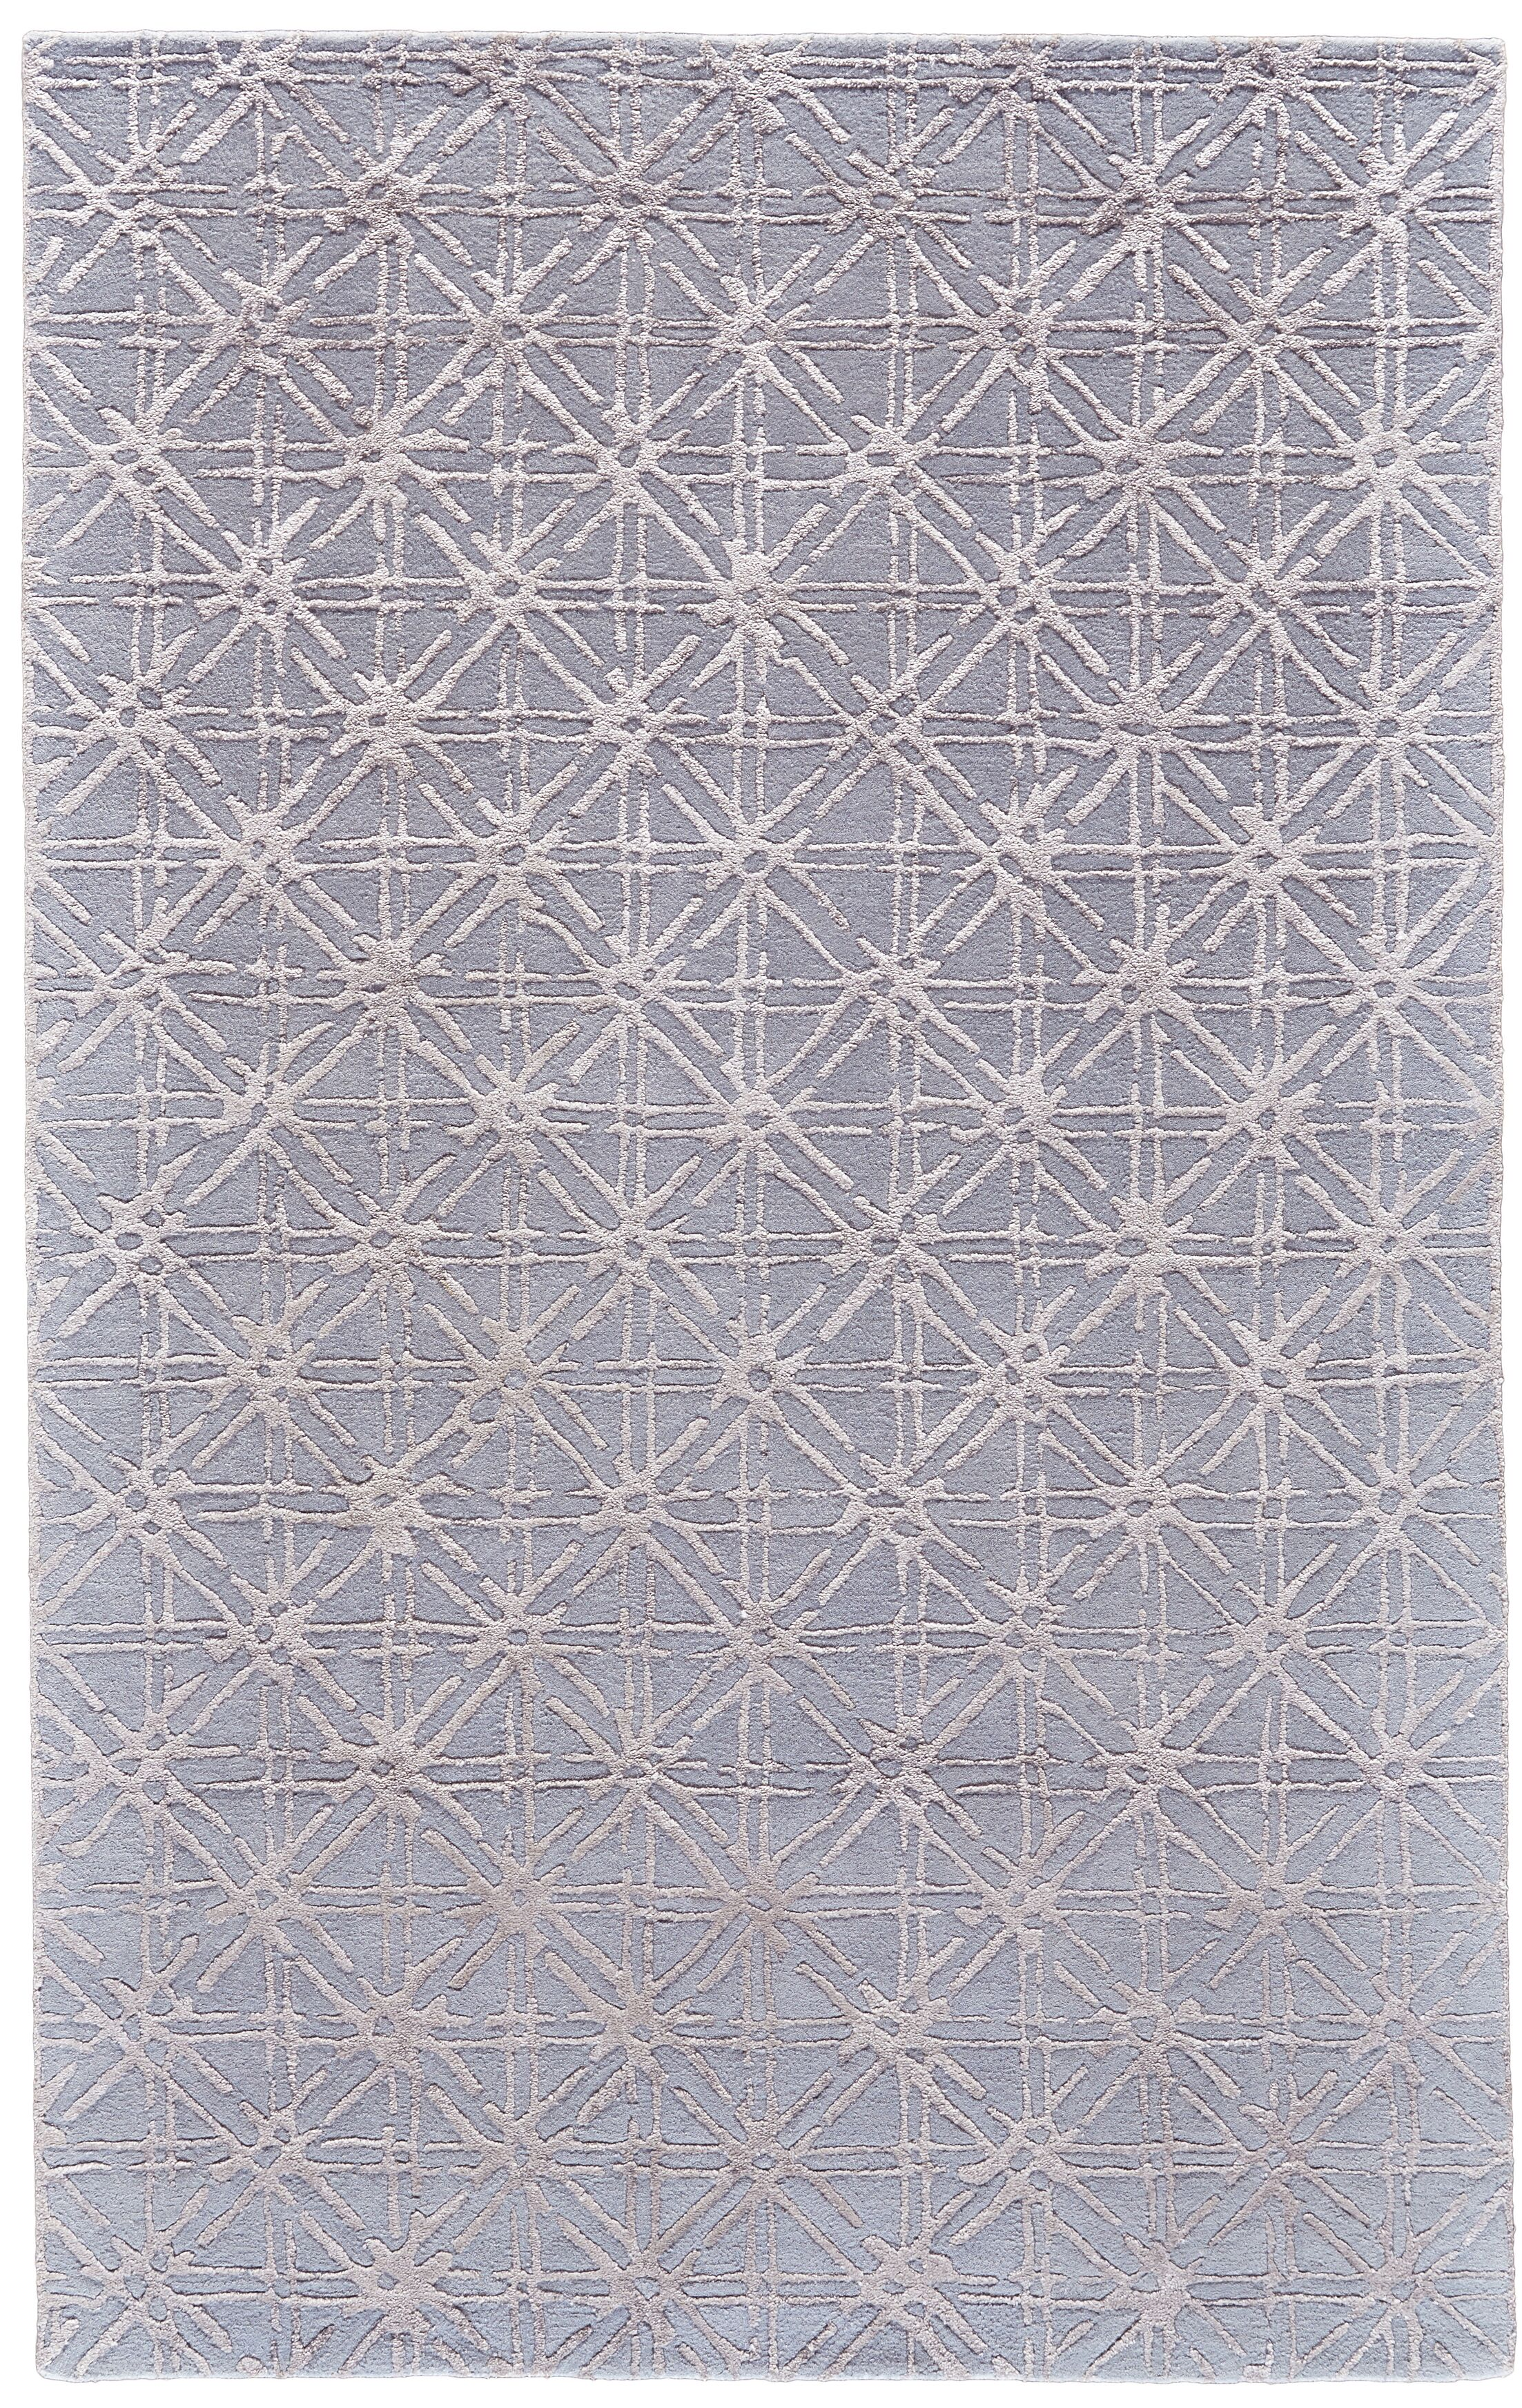 Gloria Hand-Tufted Blue/Beige Area Rug Rug Size: Rectangle 3'6